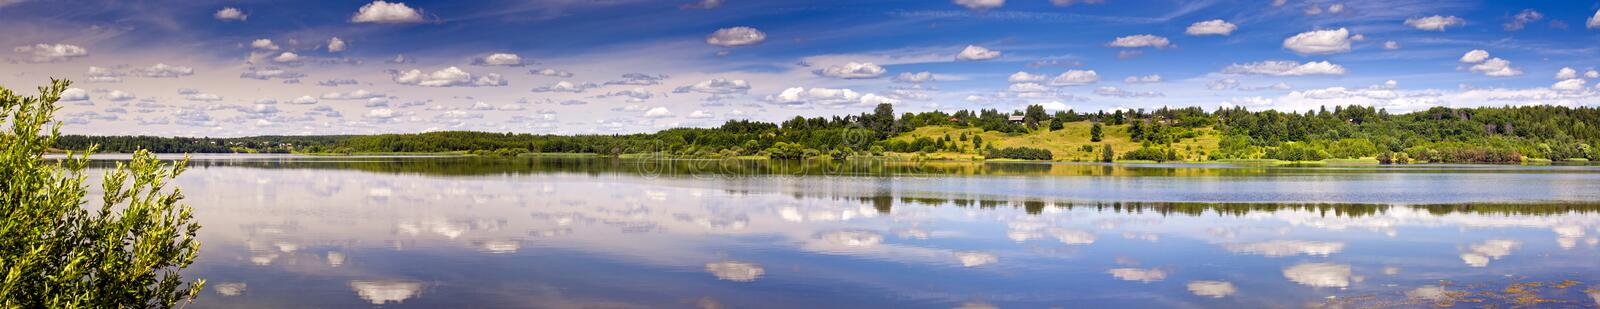 Summer river royalty free stock images